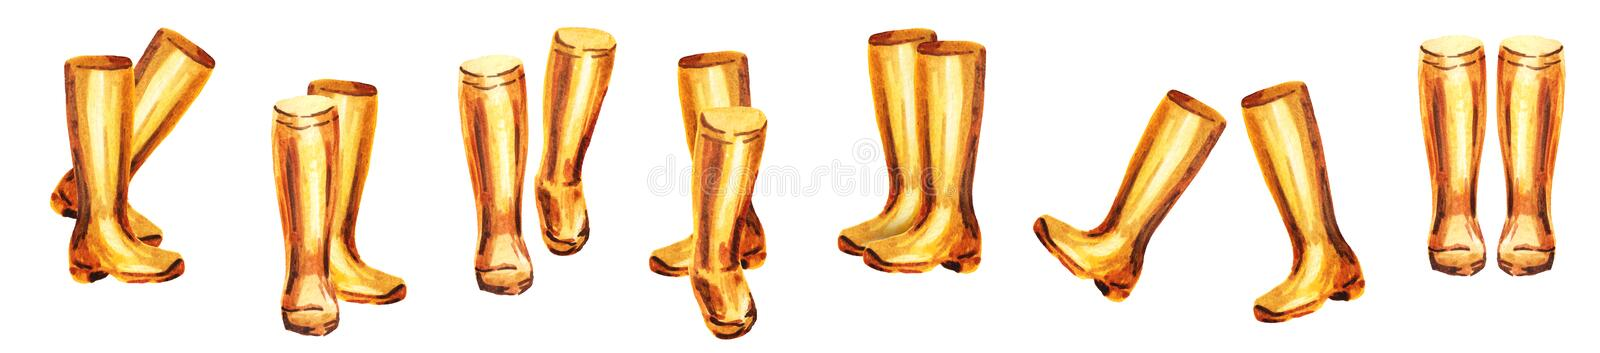 Yellow rubber boots set royalty free illustration